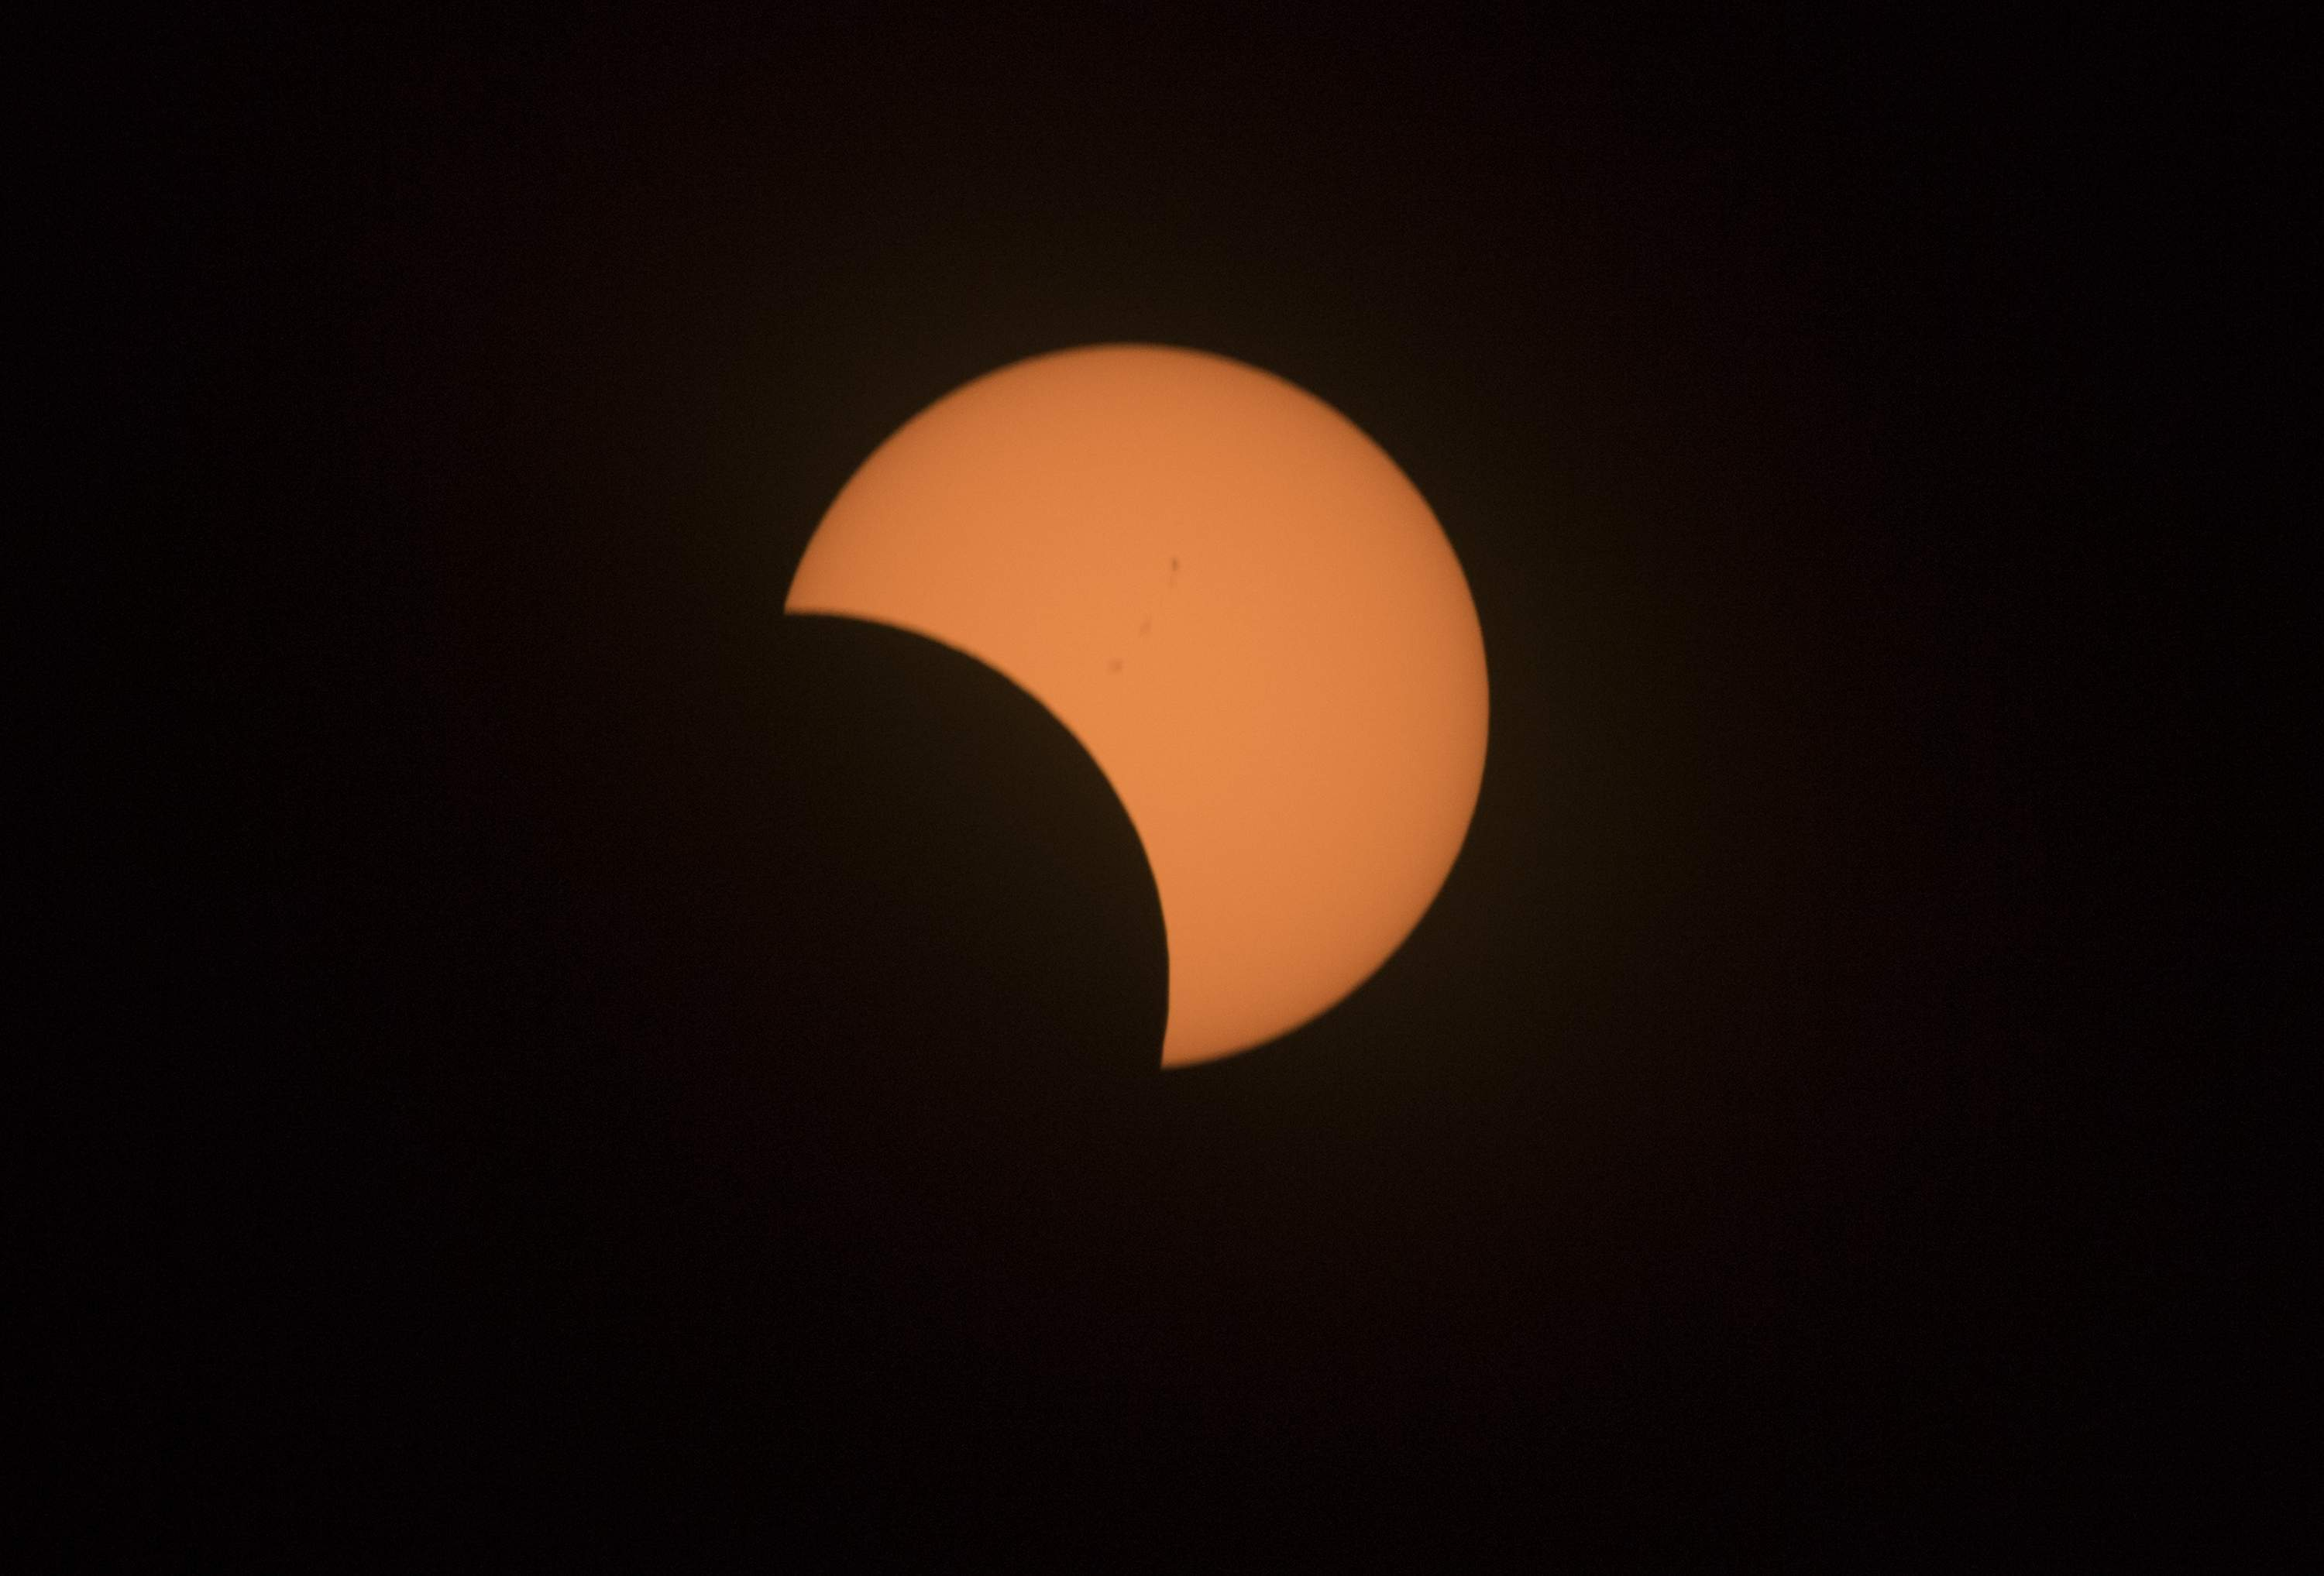 The partial solar eclipse wanes at about 11 a.m. in Stockton. [CLIFFORD OTO/THE RECORD]